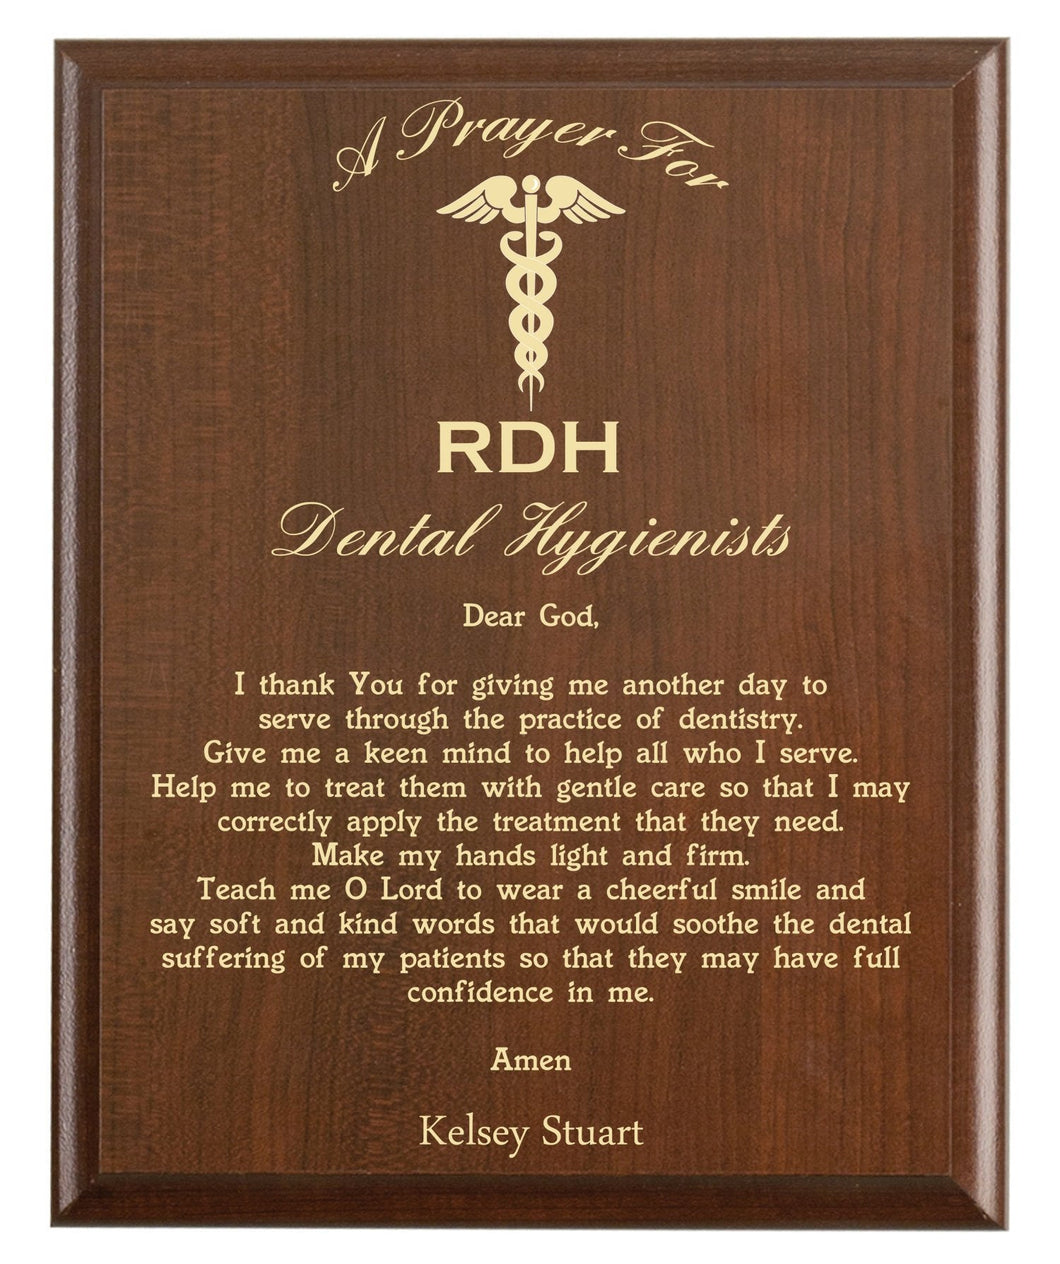 Christian prayer for a dental hygienist with industry logo and free personalization. Cherry finish with laser engraved text.